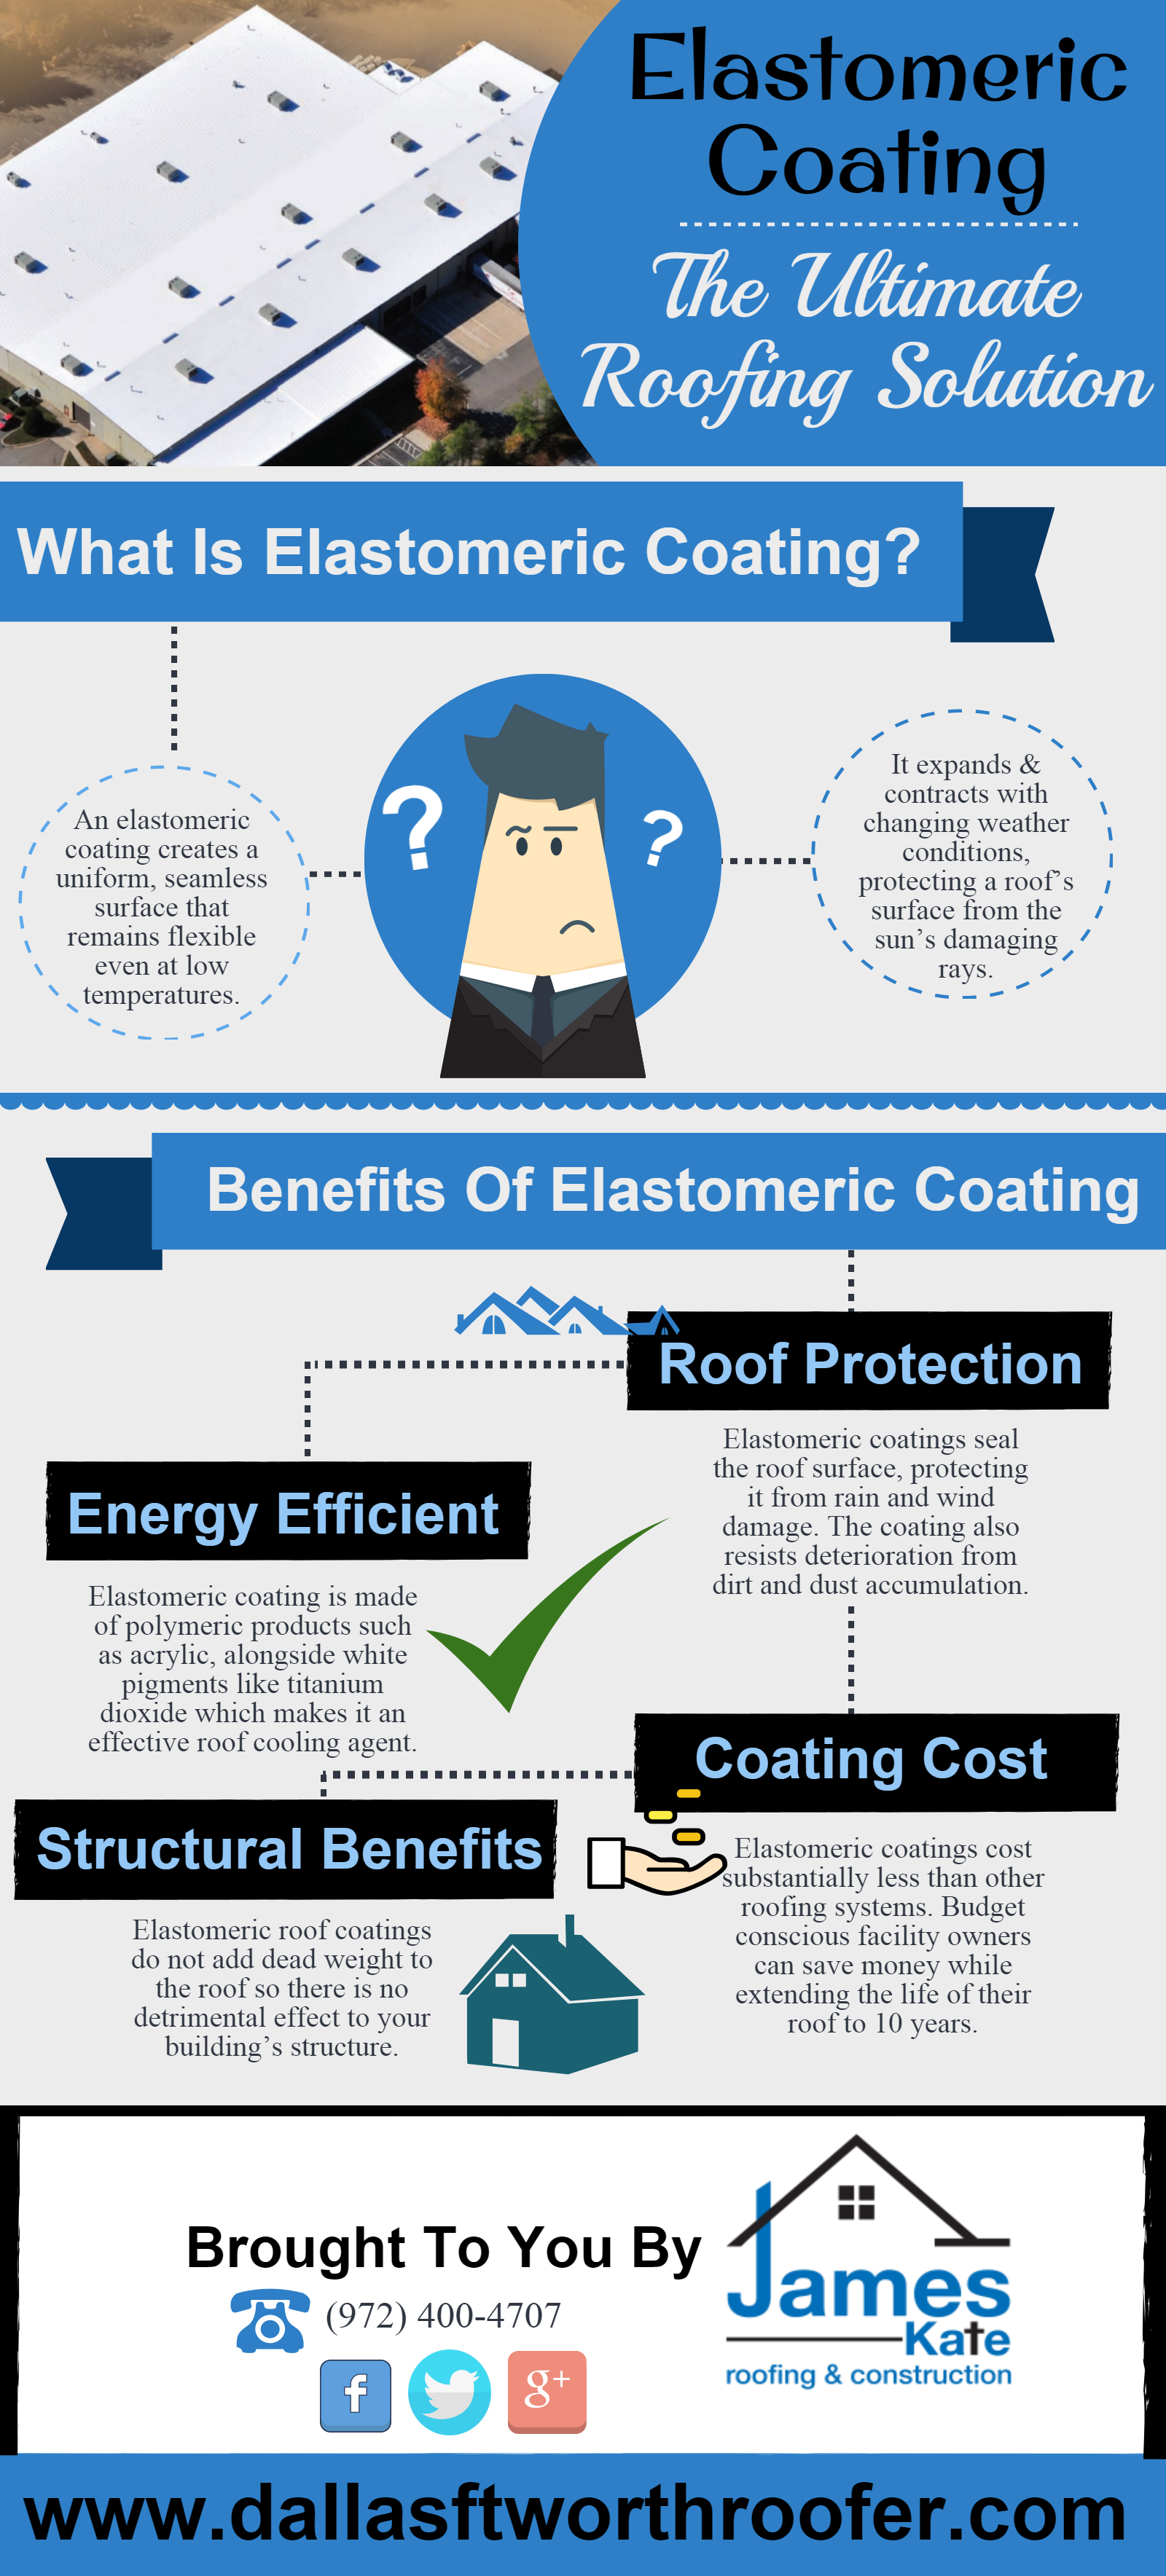 Elastomeric Coating The Ultimate Roofing Solution See More At Http Dallasftworthroofer Com Roofing Roofing Supplies Roof Protection